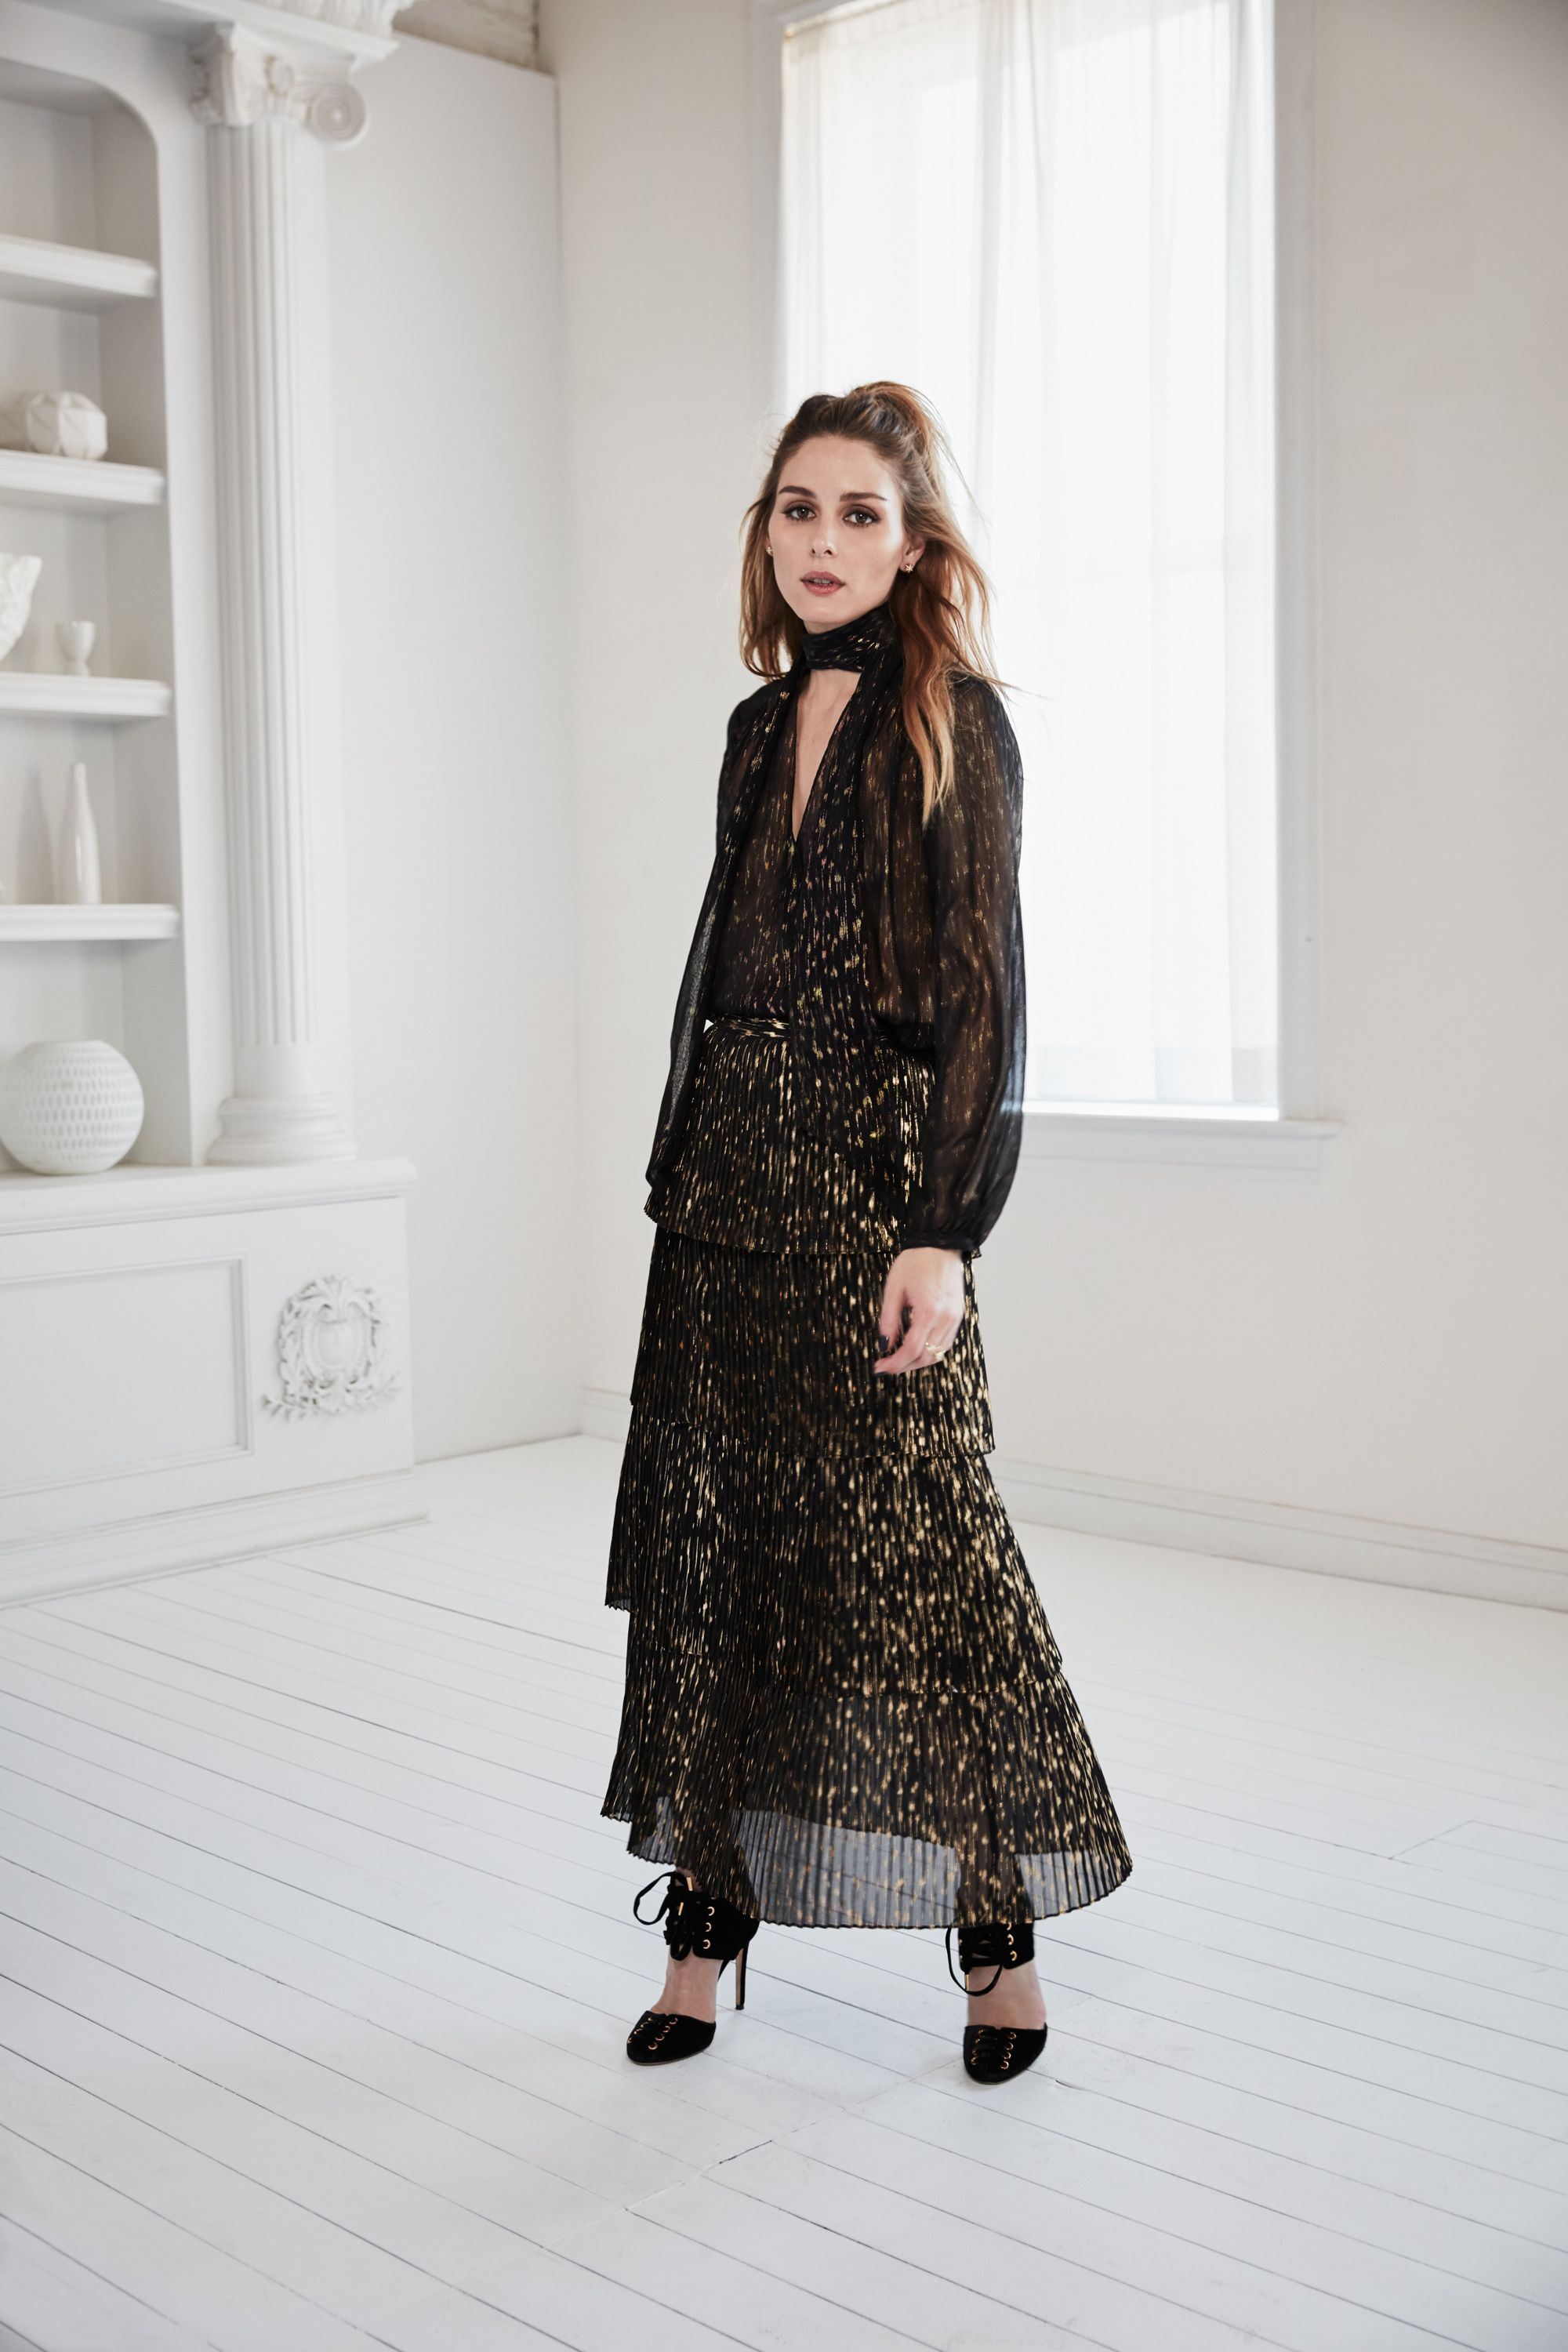 Exclusive: Your First Look at Olivia Palermo's Fall Collection for Chelsea28